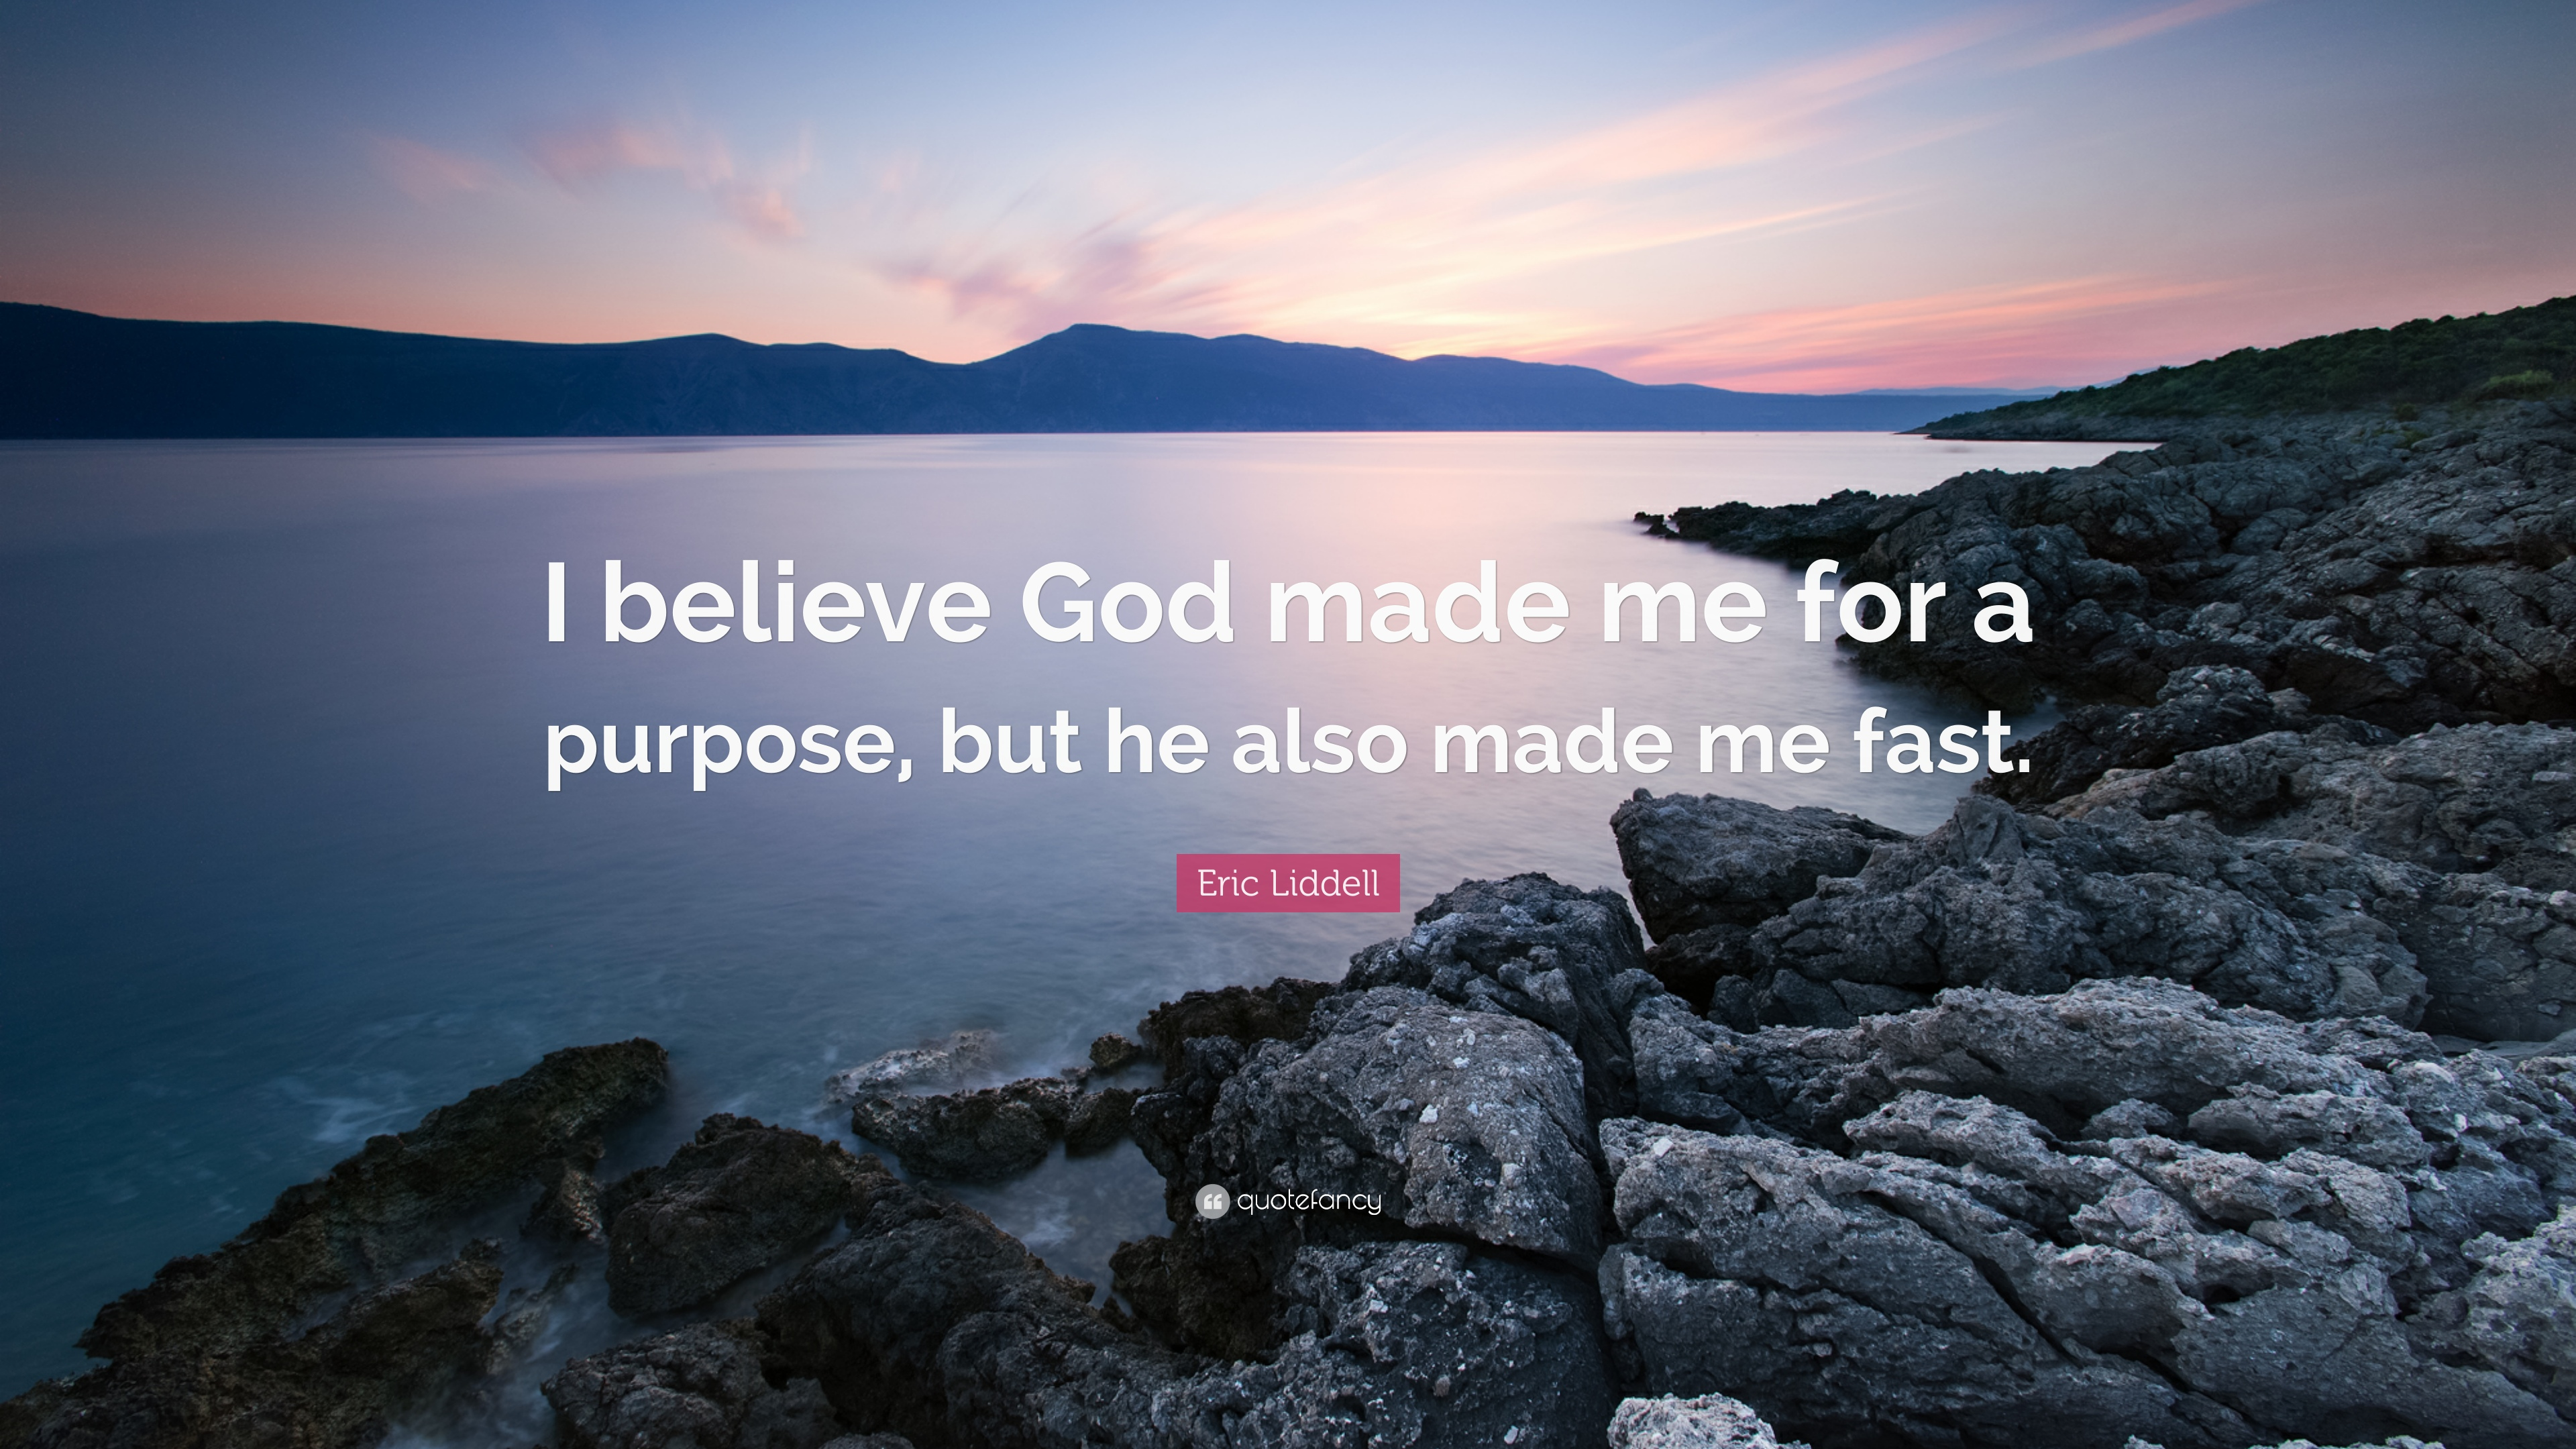 Eric Liddell Quote I Believe God Made Me For A Purpose But He Also Made Me Fast 7 Wallpapers Quotefancy The way that max did, i believe that's somewhere i can go with. eric liddell quote i believe god made